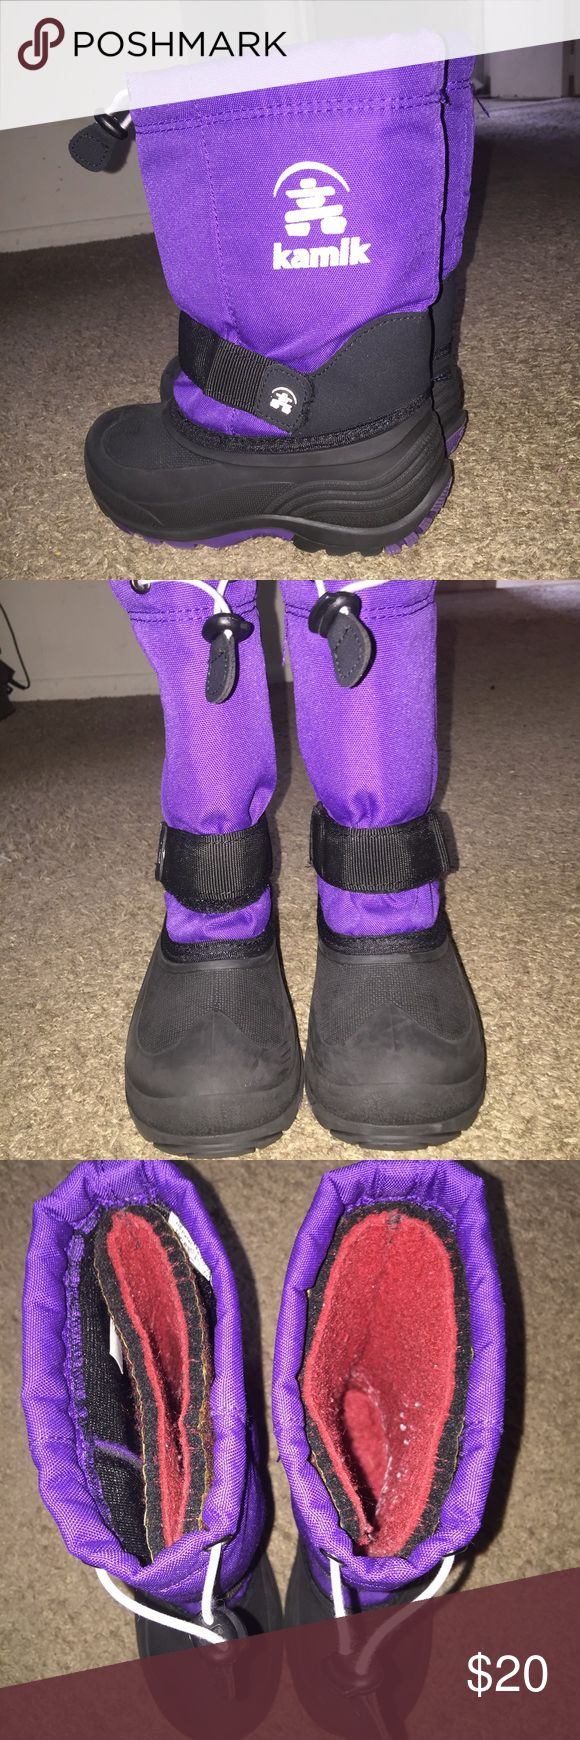 Kamik winter boots Kamik insulated girls winter boots. Gently worn. Color is purple and black. Size 13 kids. No box. Kamik Shoes Rain & Snow Boots